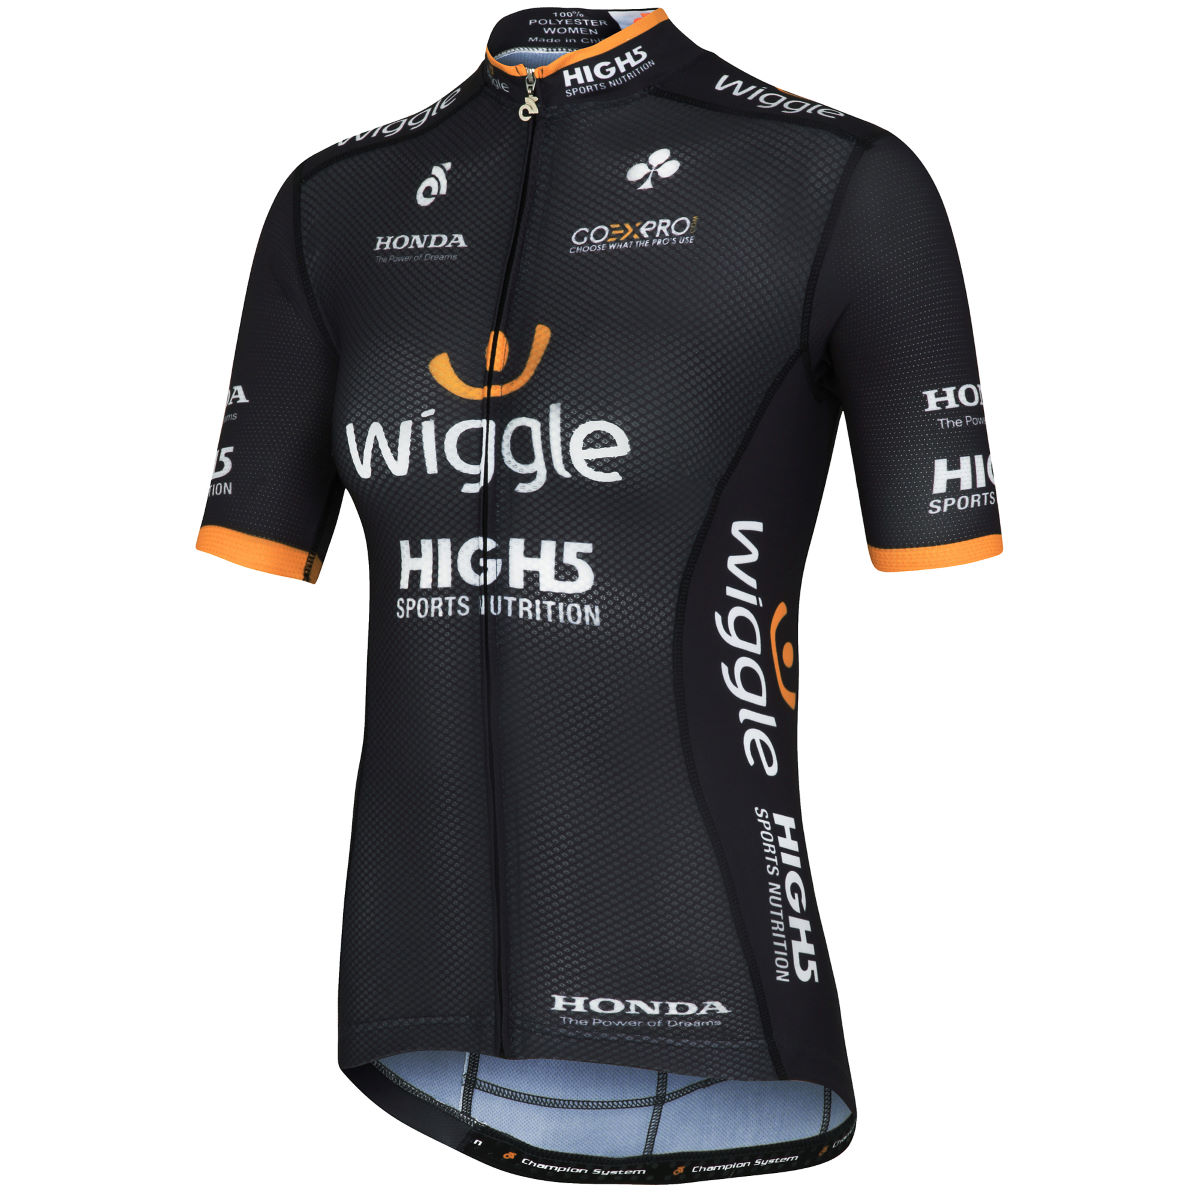 Maillot Femme Wiggle High5 Team Bella - Small Gris Maillots des équipes pro